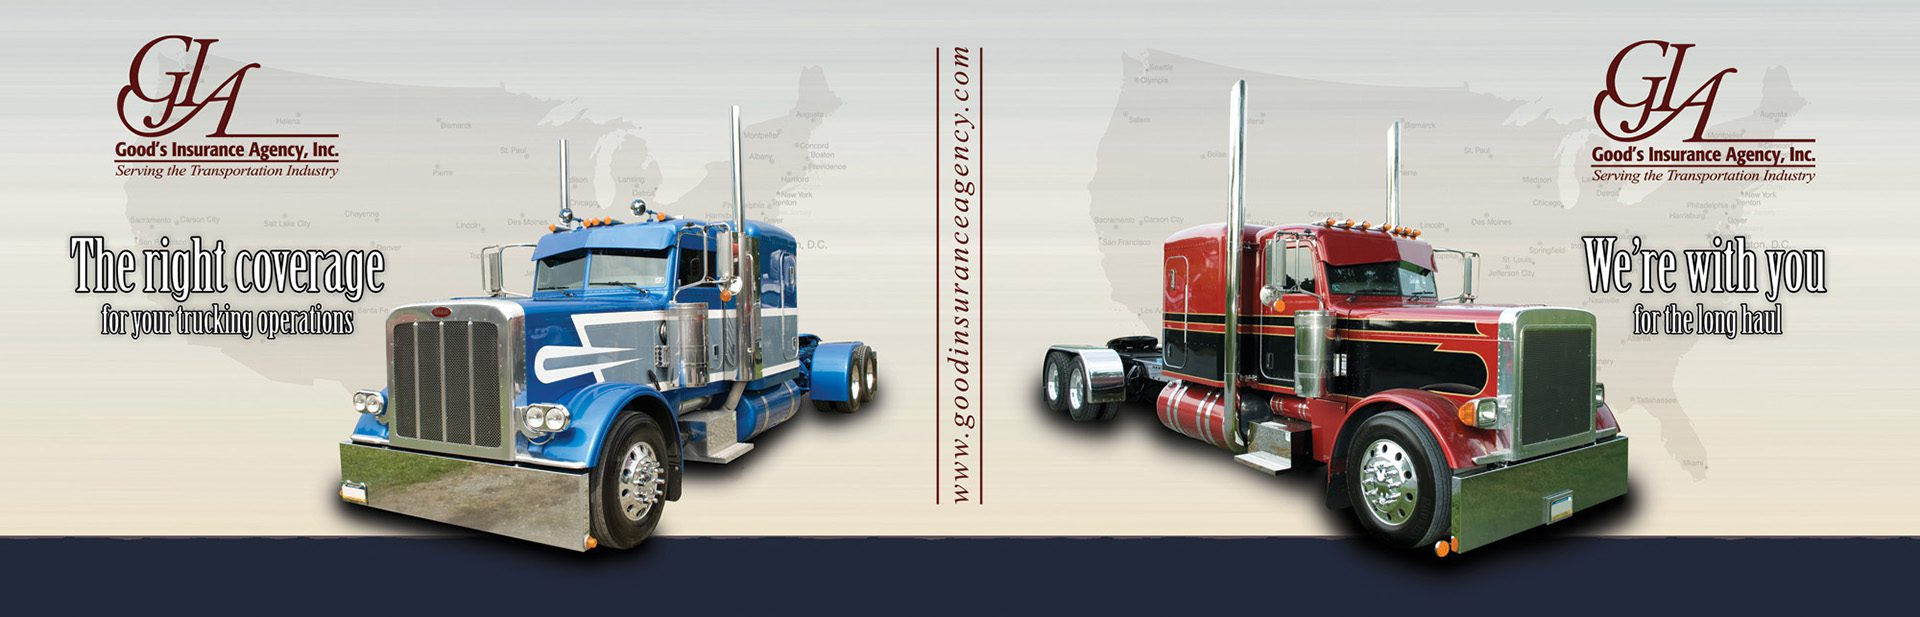 Homepage - Goods Insurance Agency Inc Truck Banner with Logo and States Map